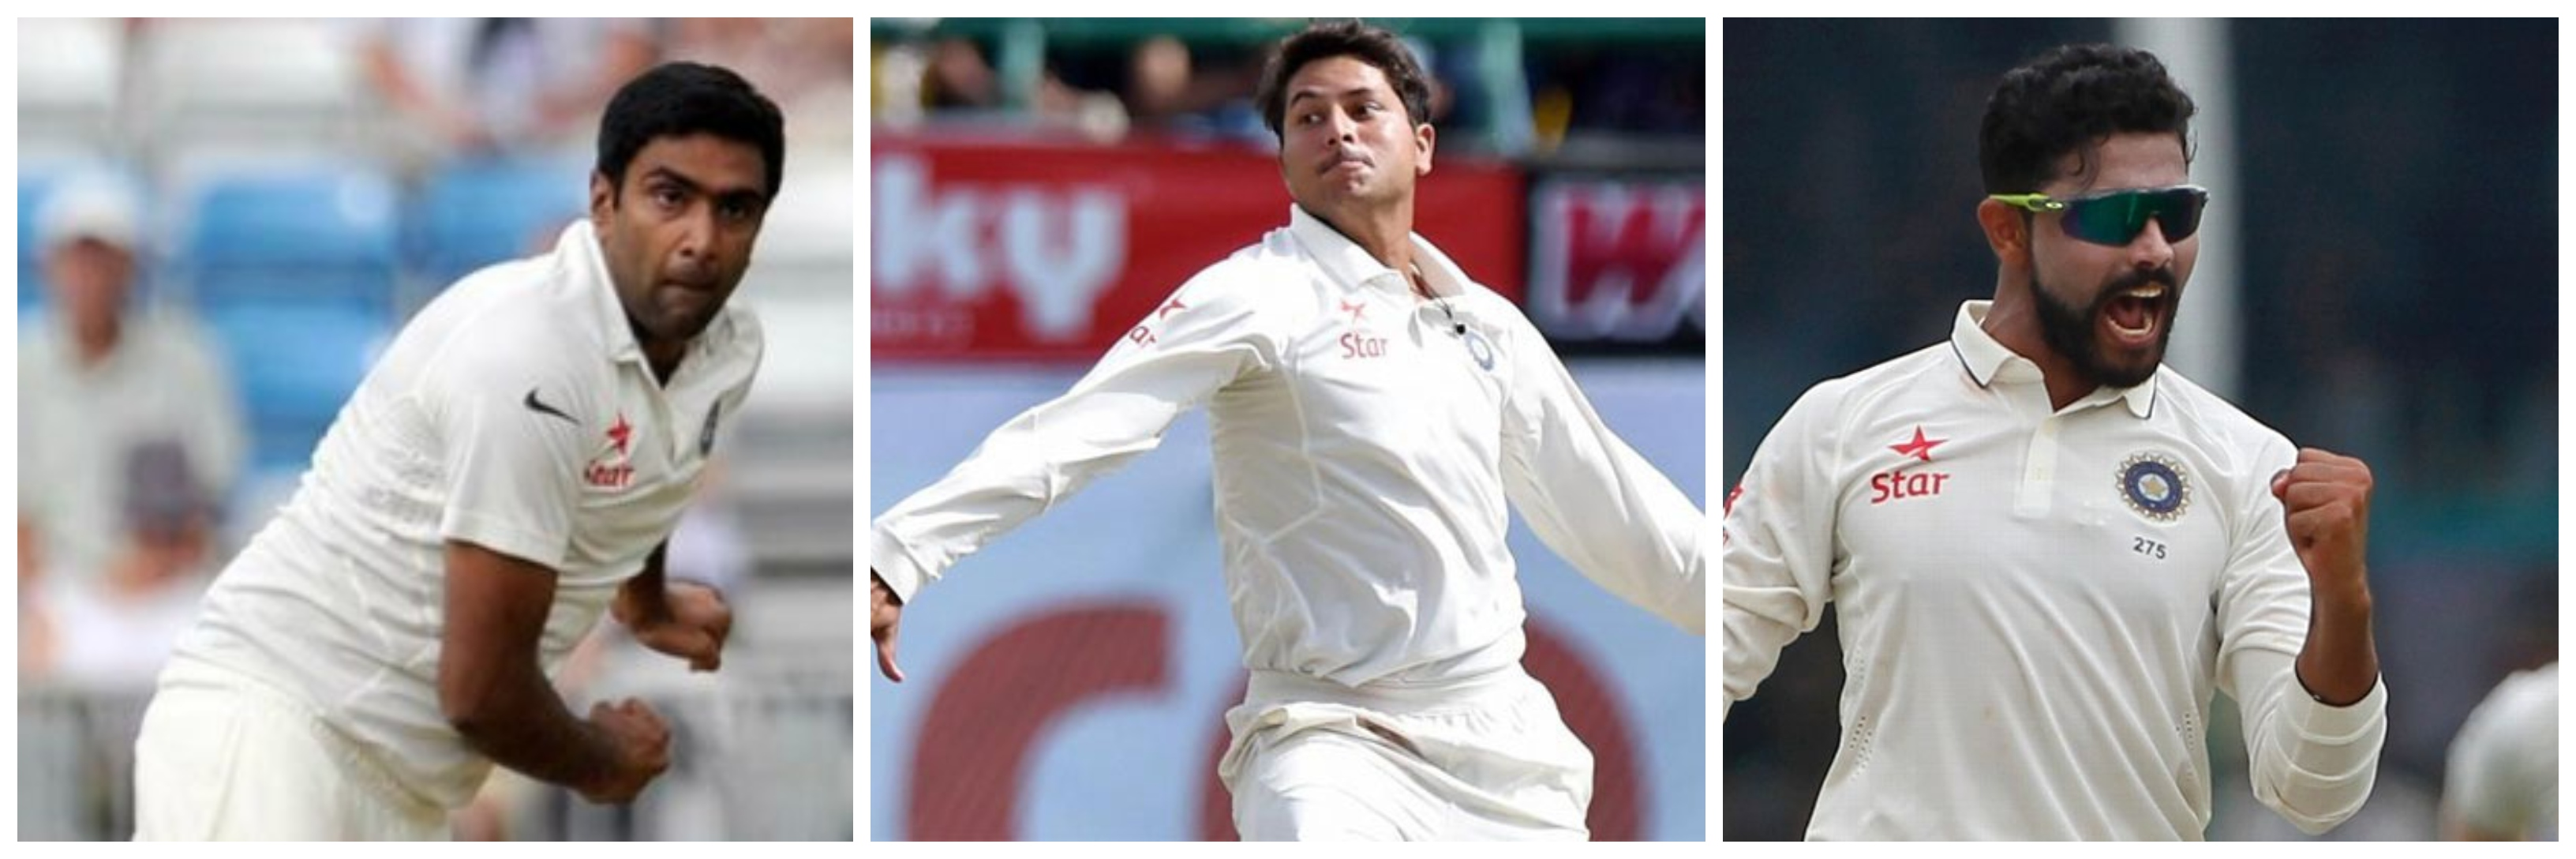 The role of spin must not be understated when India plays overseas.